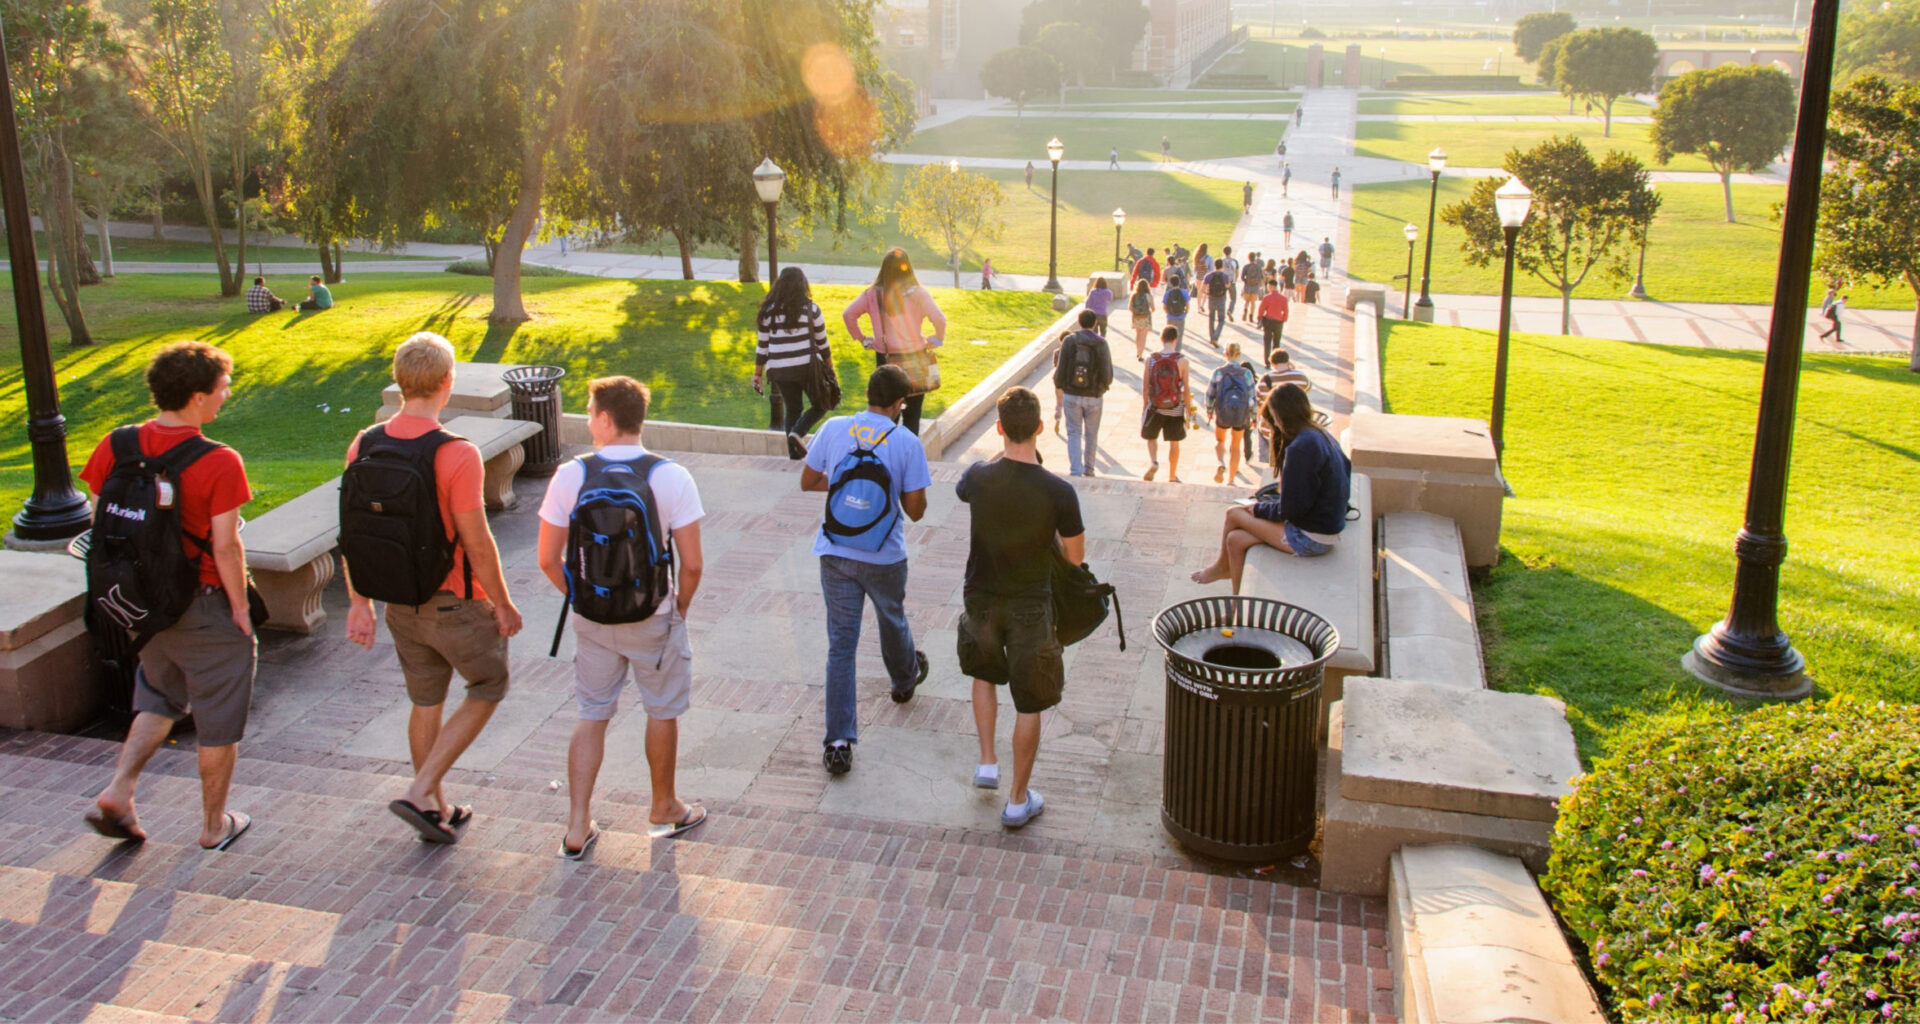 Students walking home late afternoon at the University of California, Los Angeles campus